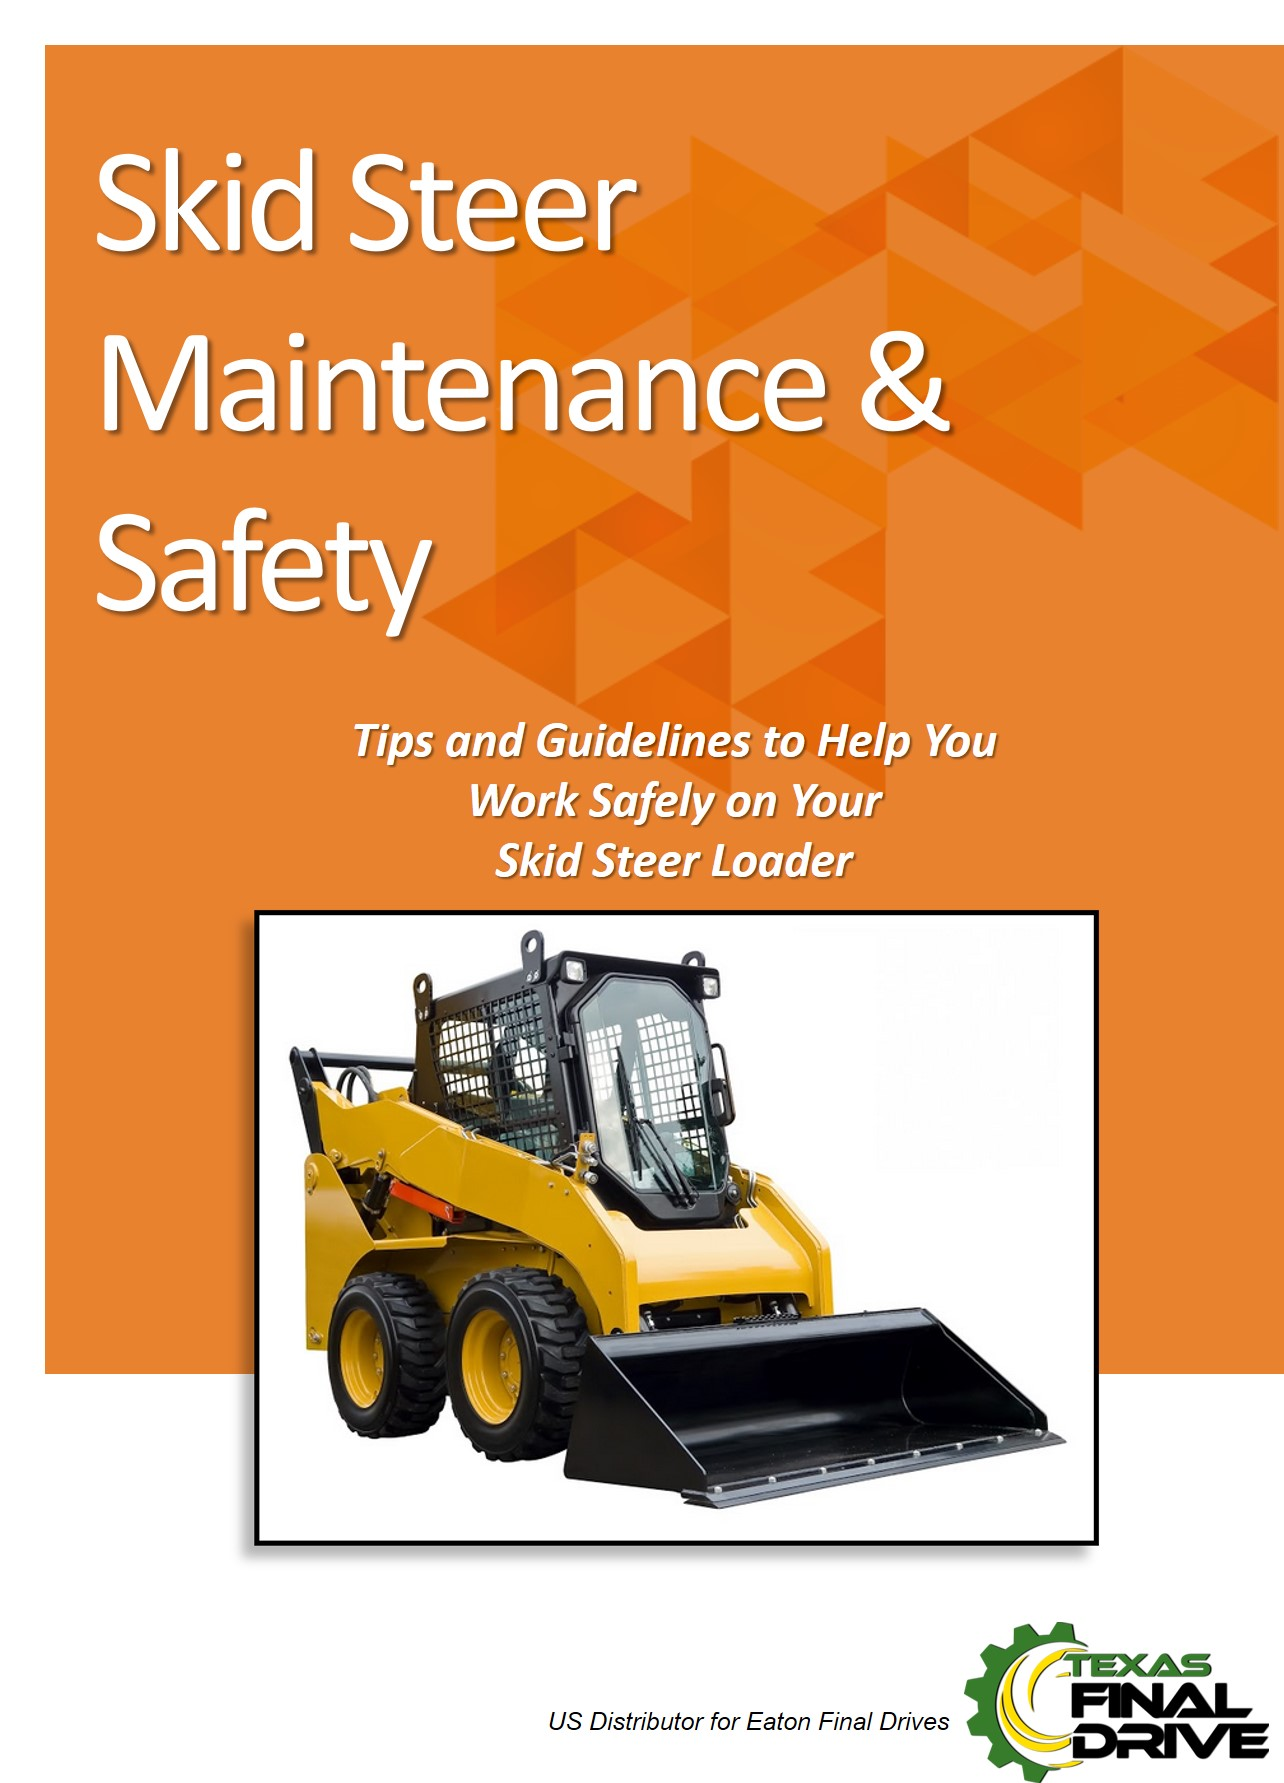 skid-steer-maintenance-and-safety-image